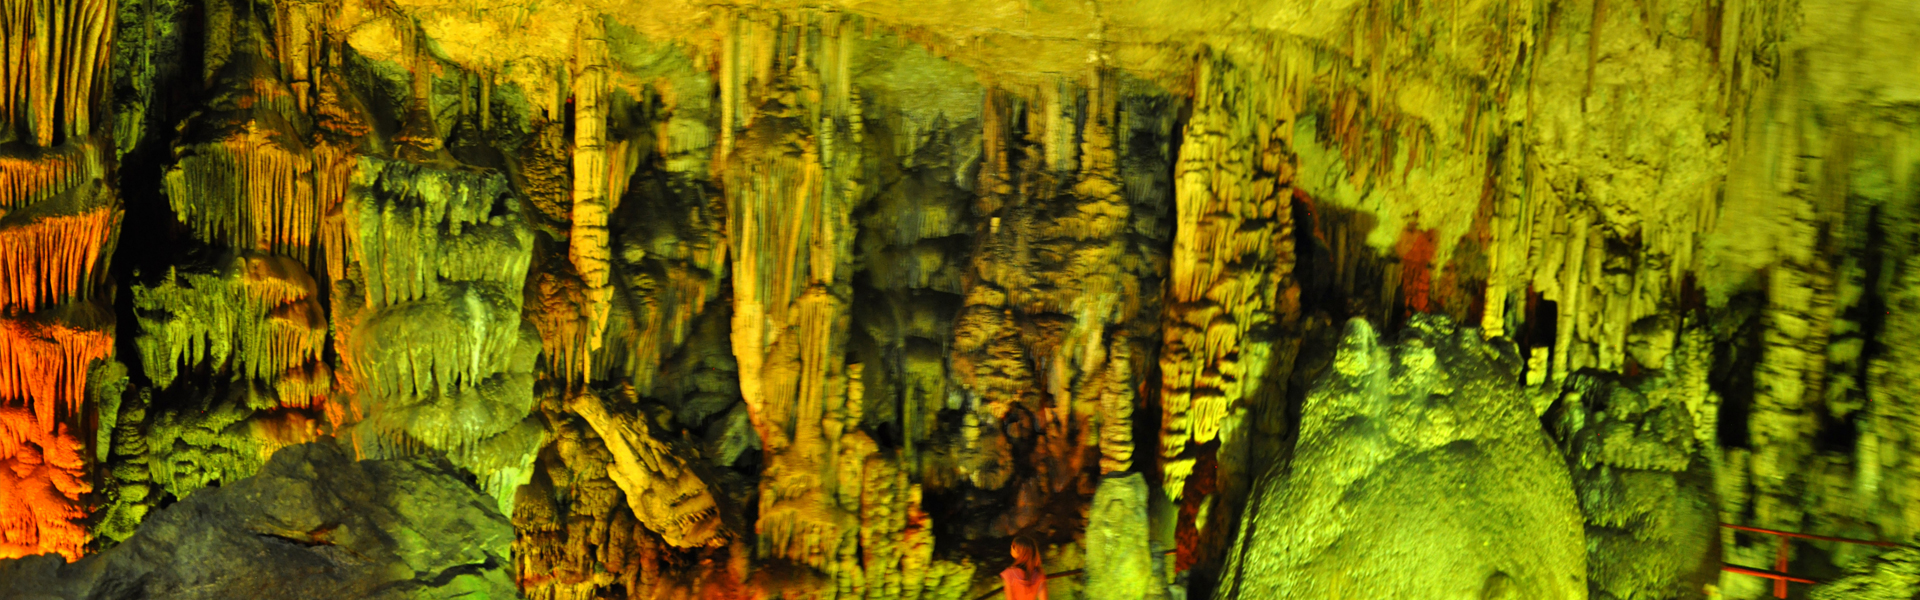 The Diktaean Cave